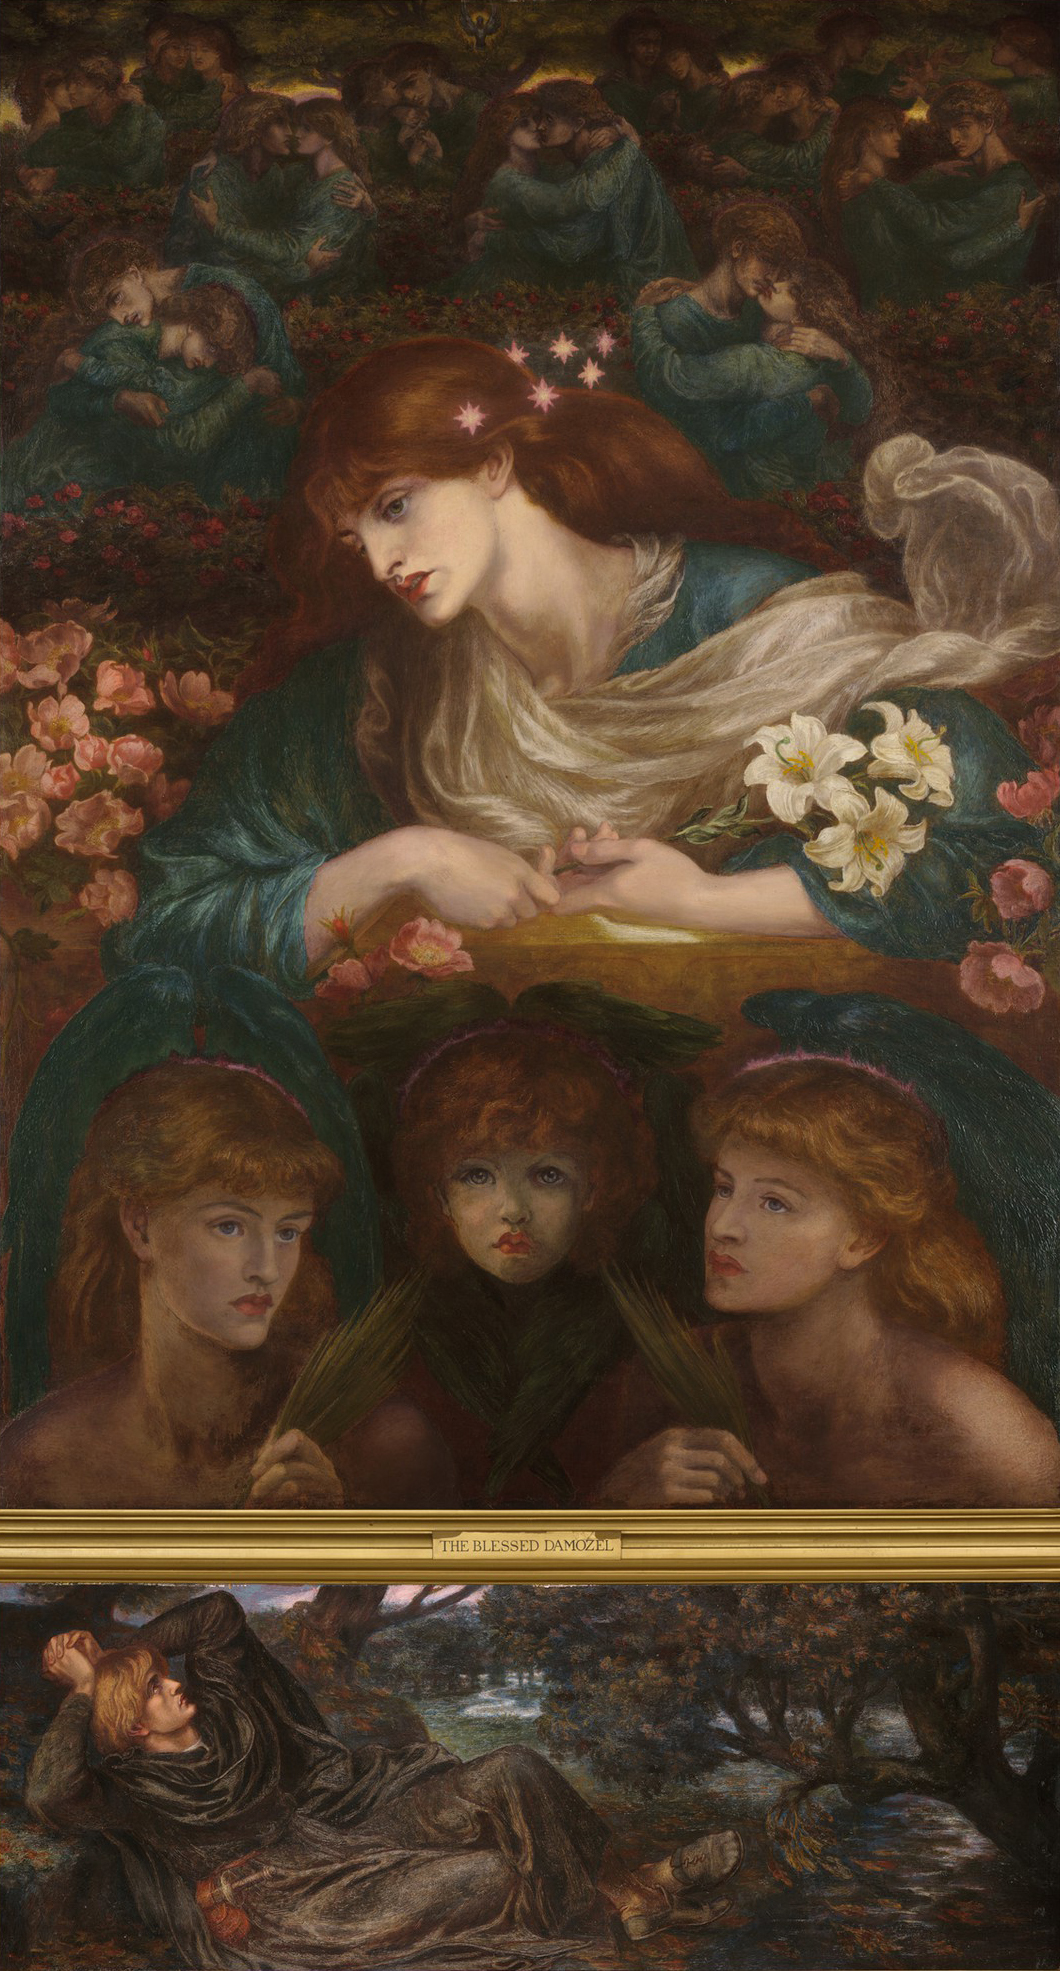 https://i2.wp.com/upload.wikimedia.org/wikipedia/commons/9/98/Dante_Gabriel_Rossetti_The_Blessed_Damozel.jpg